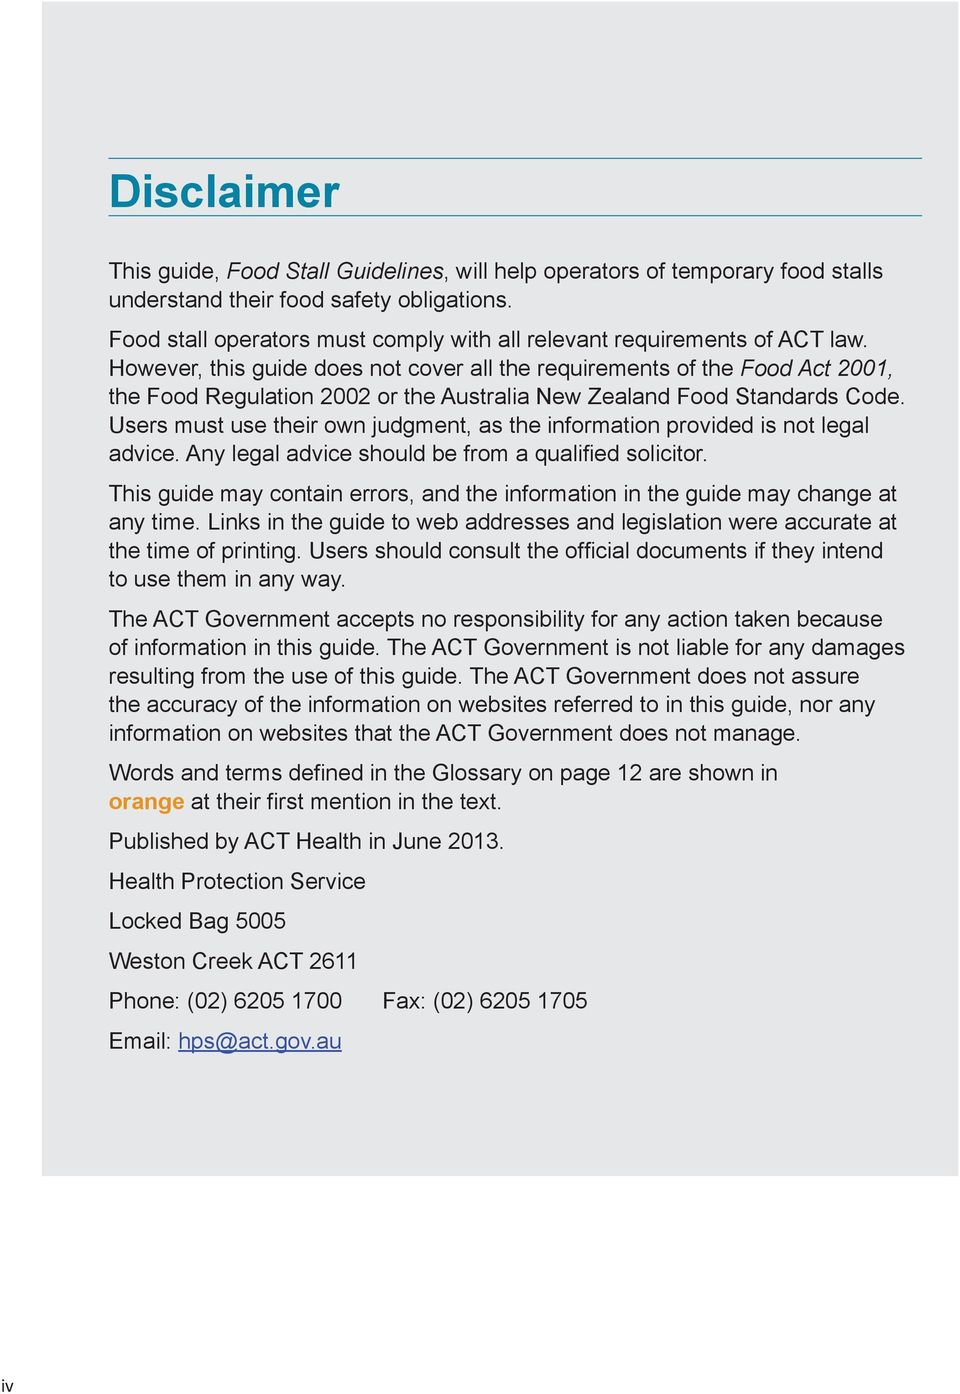 However, this guide does not cover all the requirements of the Food Act 2001, the Food Regulation 2002 or the Australia New Zealand Food Standards Code.